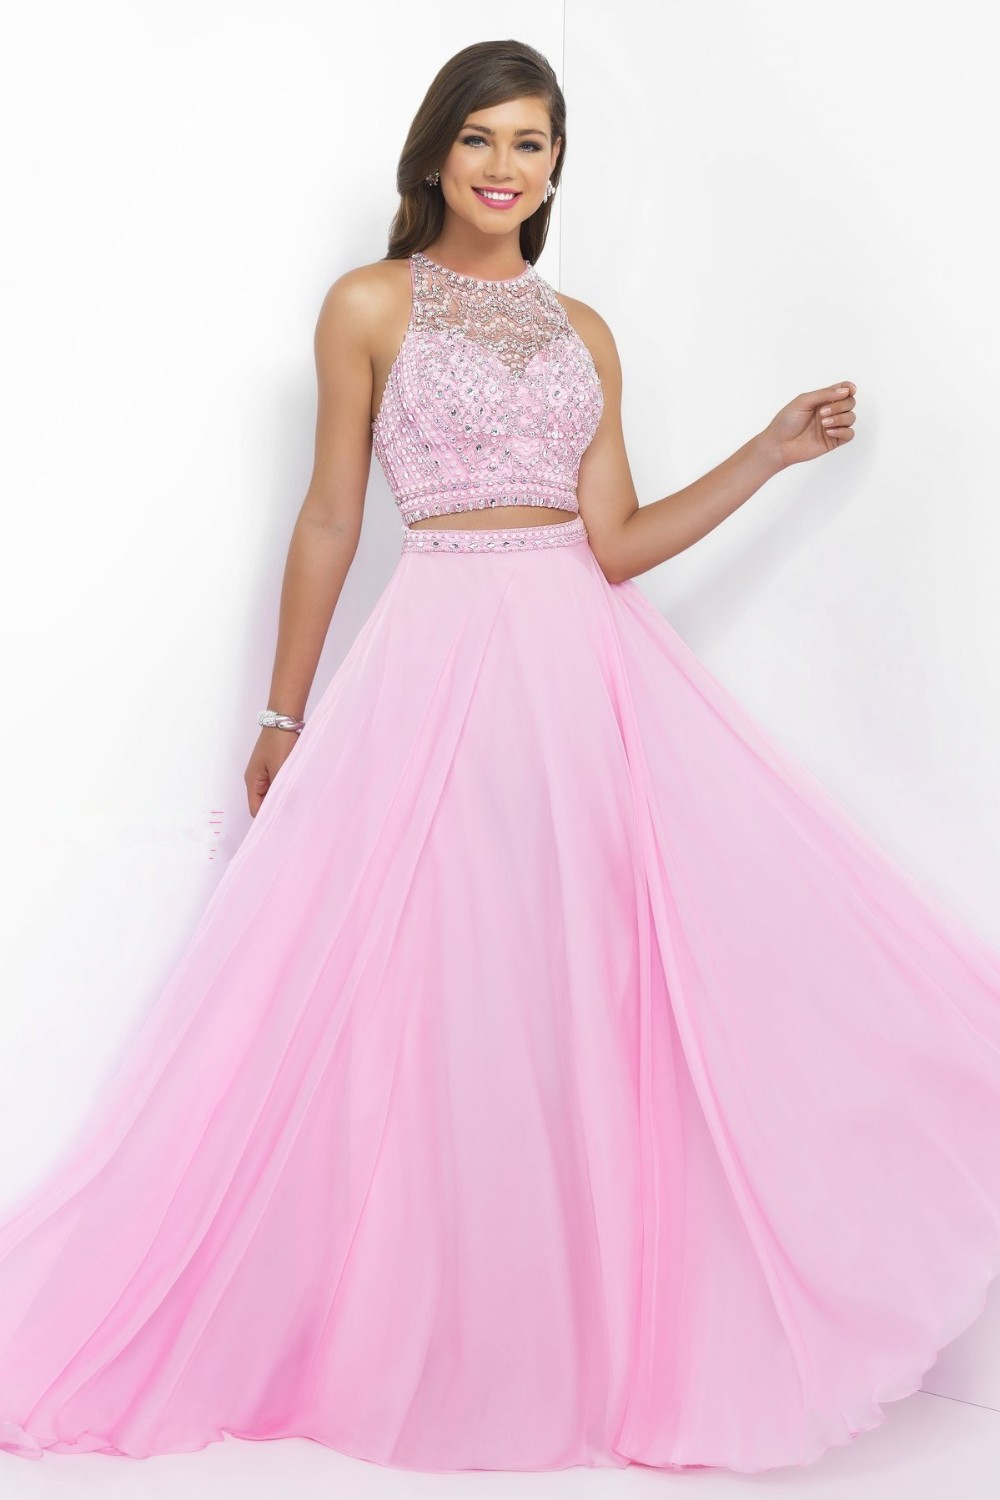 New Popular 2 Piece Prom Dresses O Neck Sleeveless Criss-cross Back ...